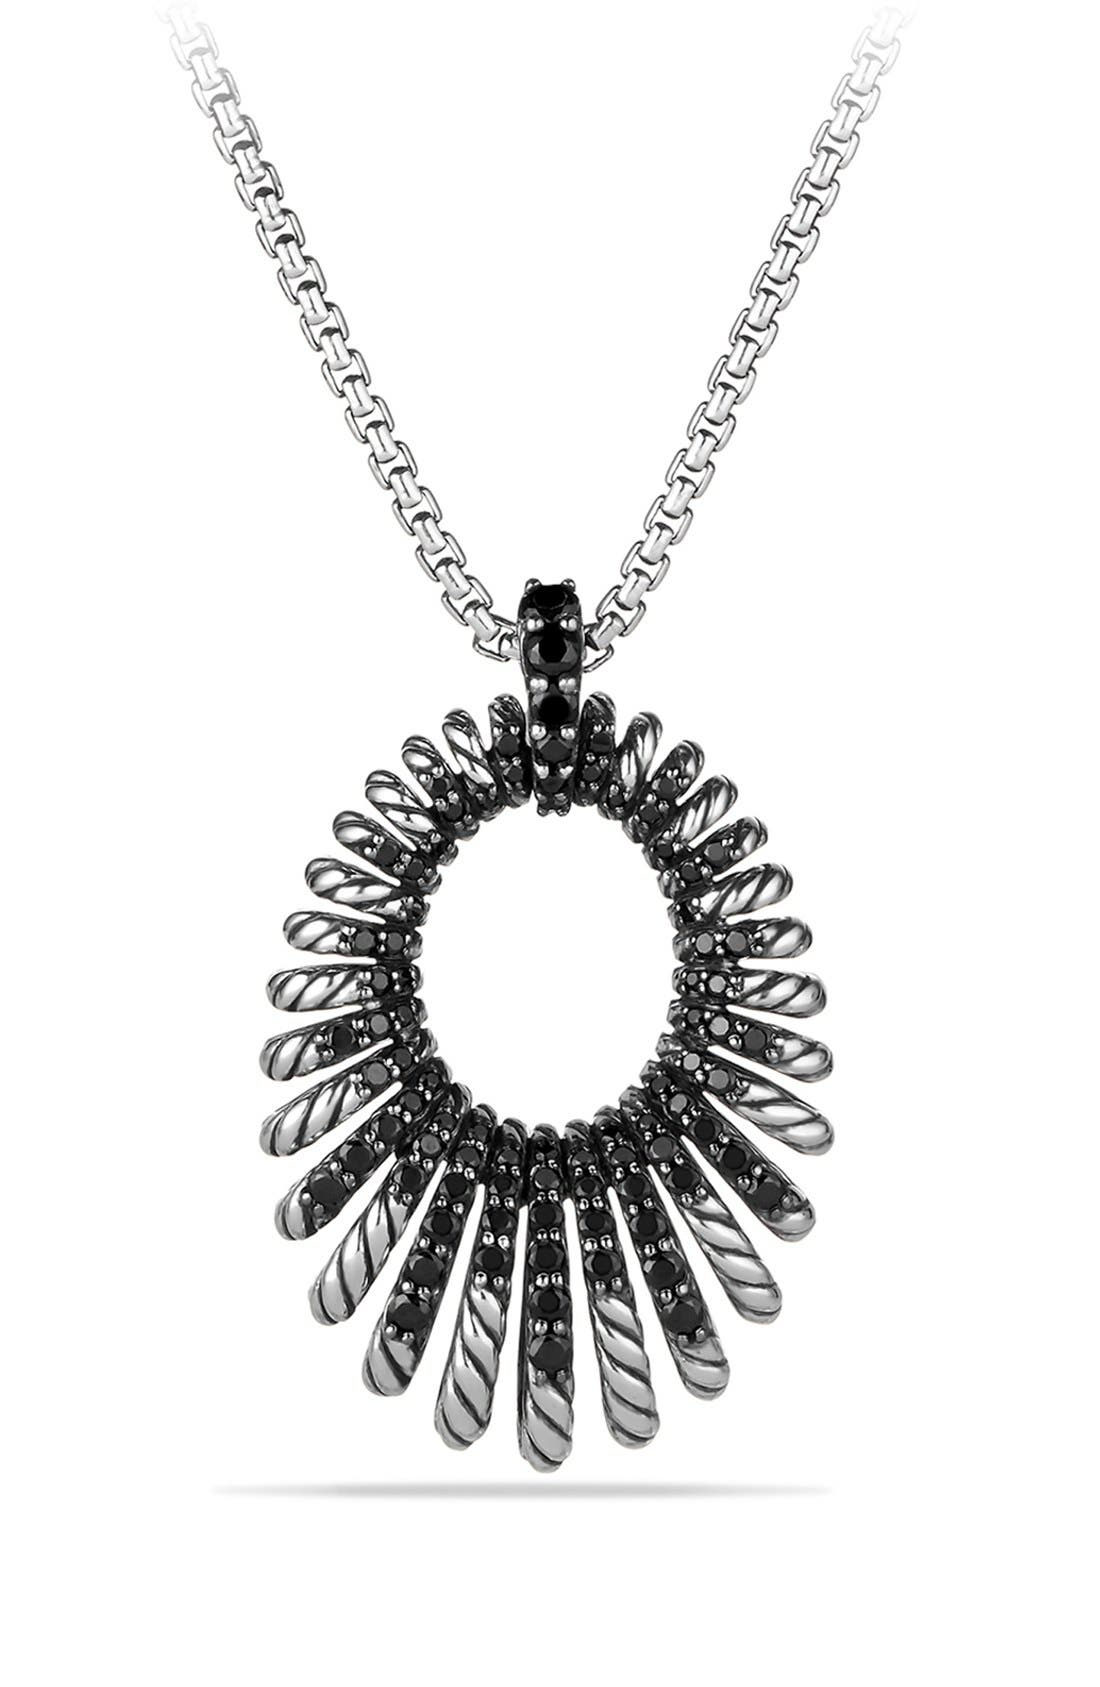 Alternate Image 1 Selected - David Yurman 'Tempo' Necklace with Black Spinel